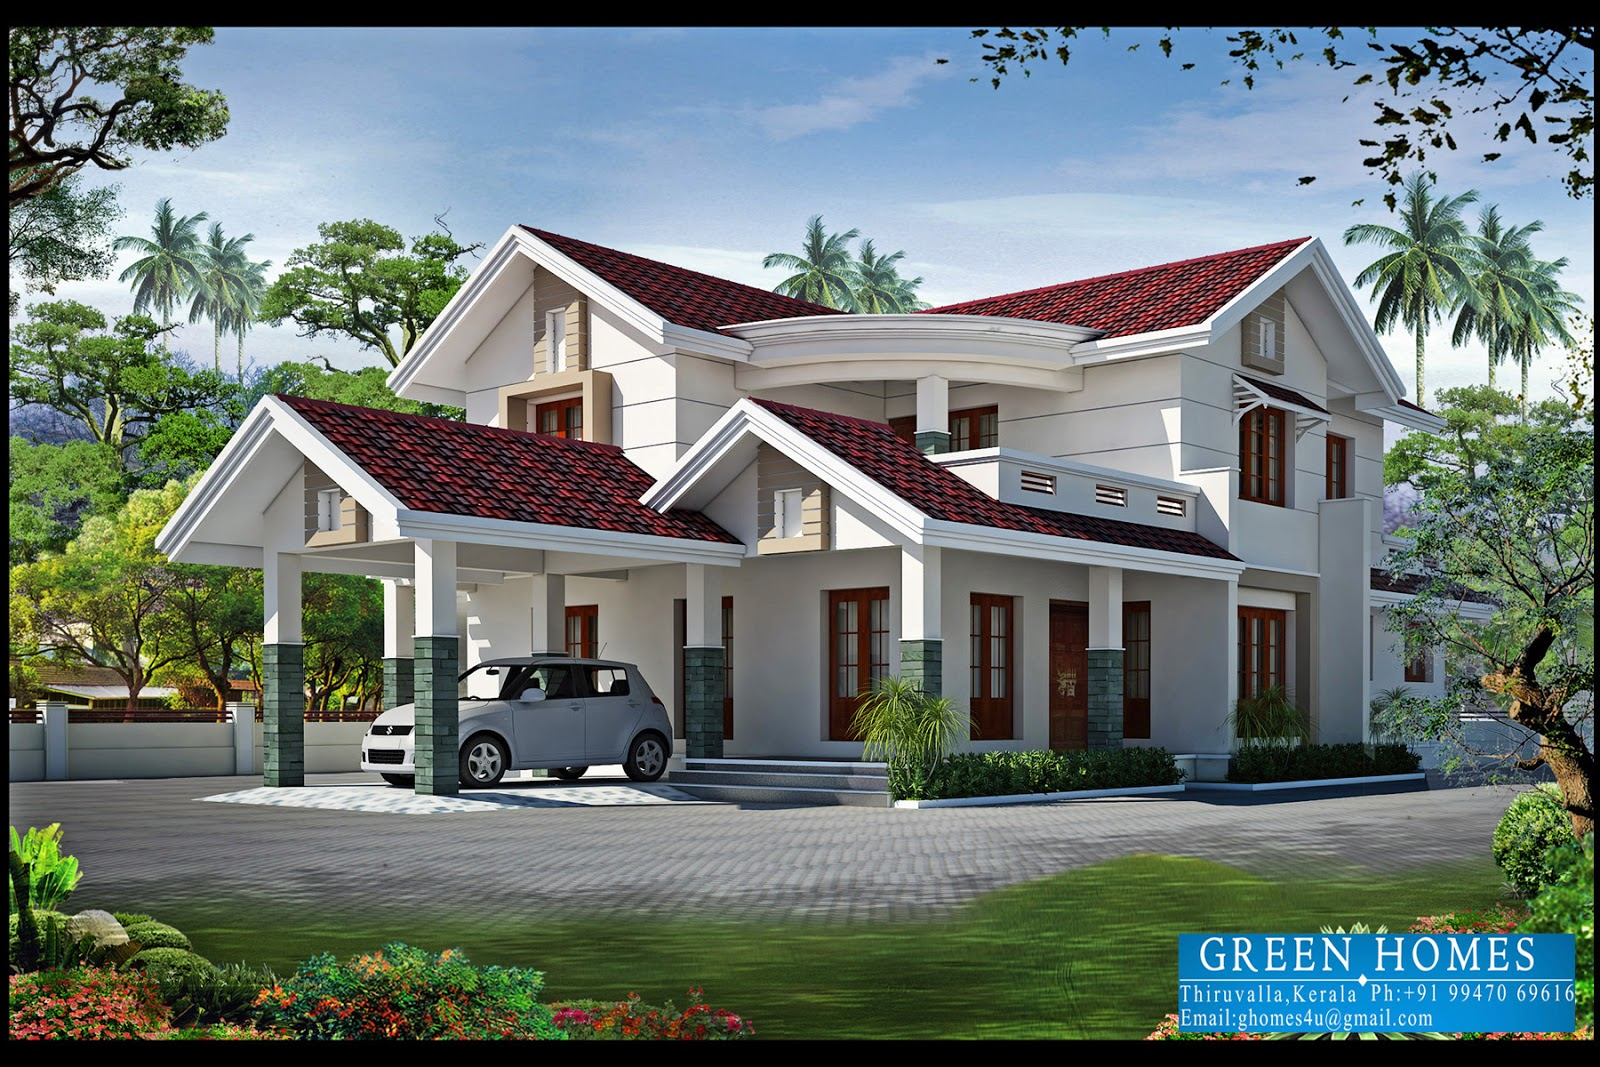 Green homes 4bhk kerala home design 2550 for New home designs kerala